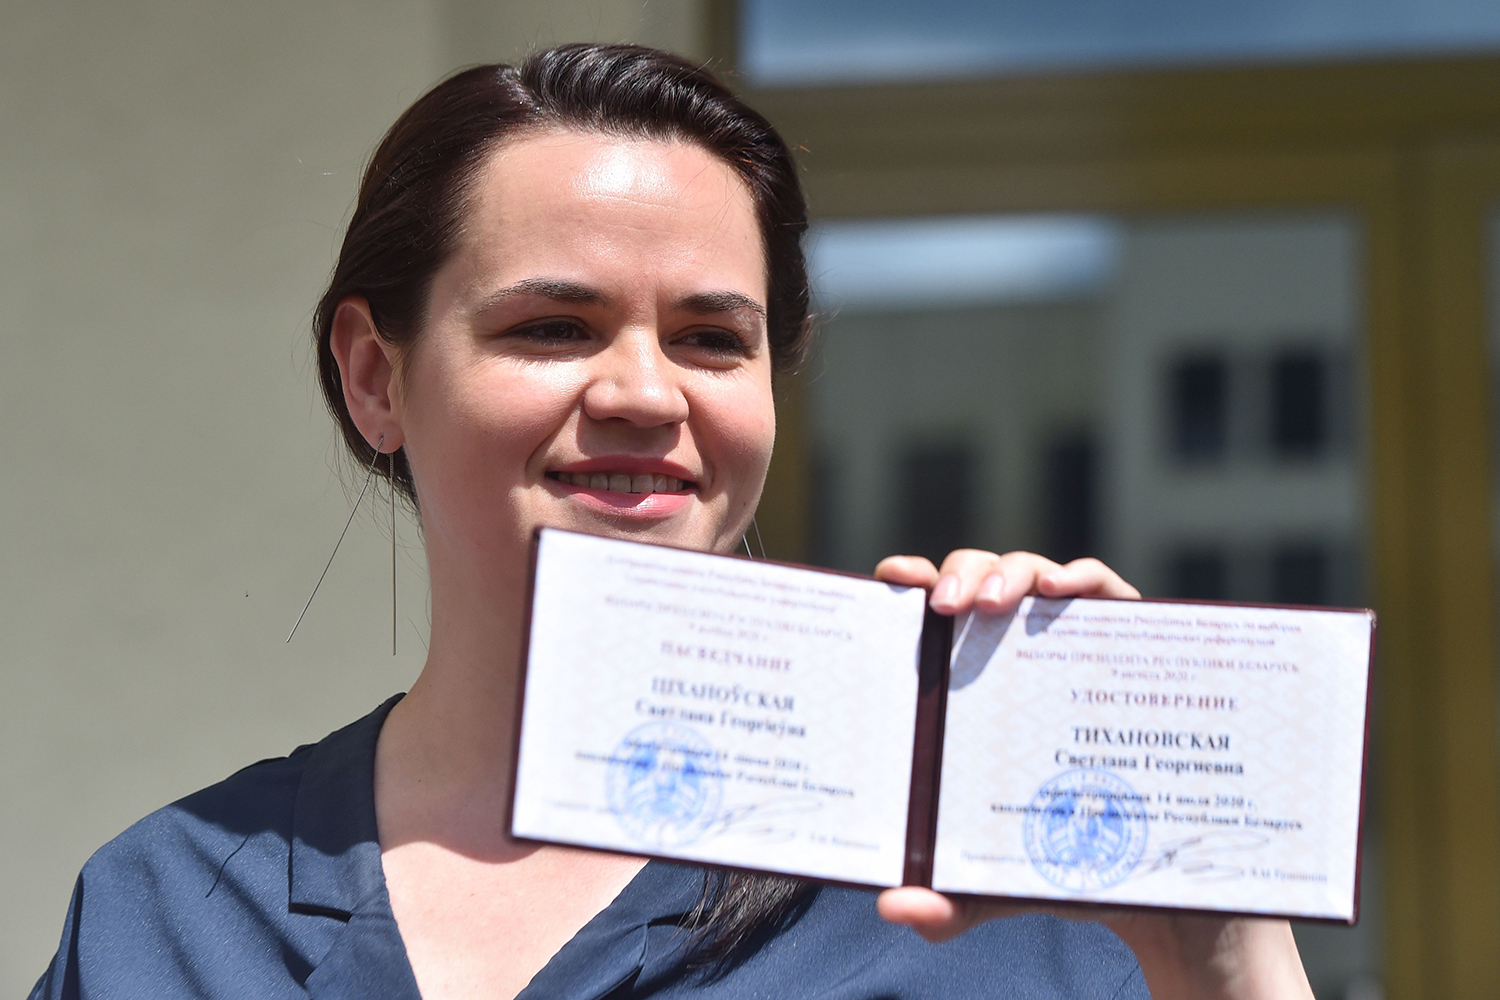 Tsikhanouskaya shows her candidate's certificate after she officially registered for the presidential election in Minsk on July 14, 2020.